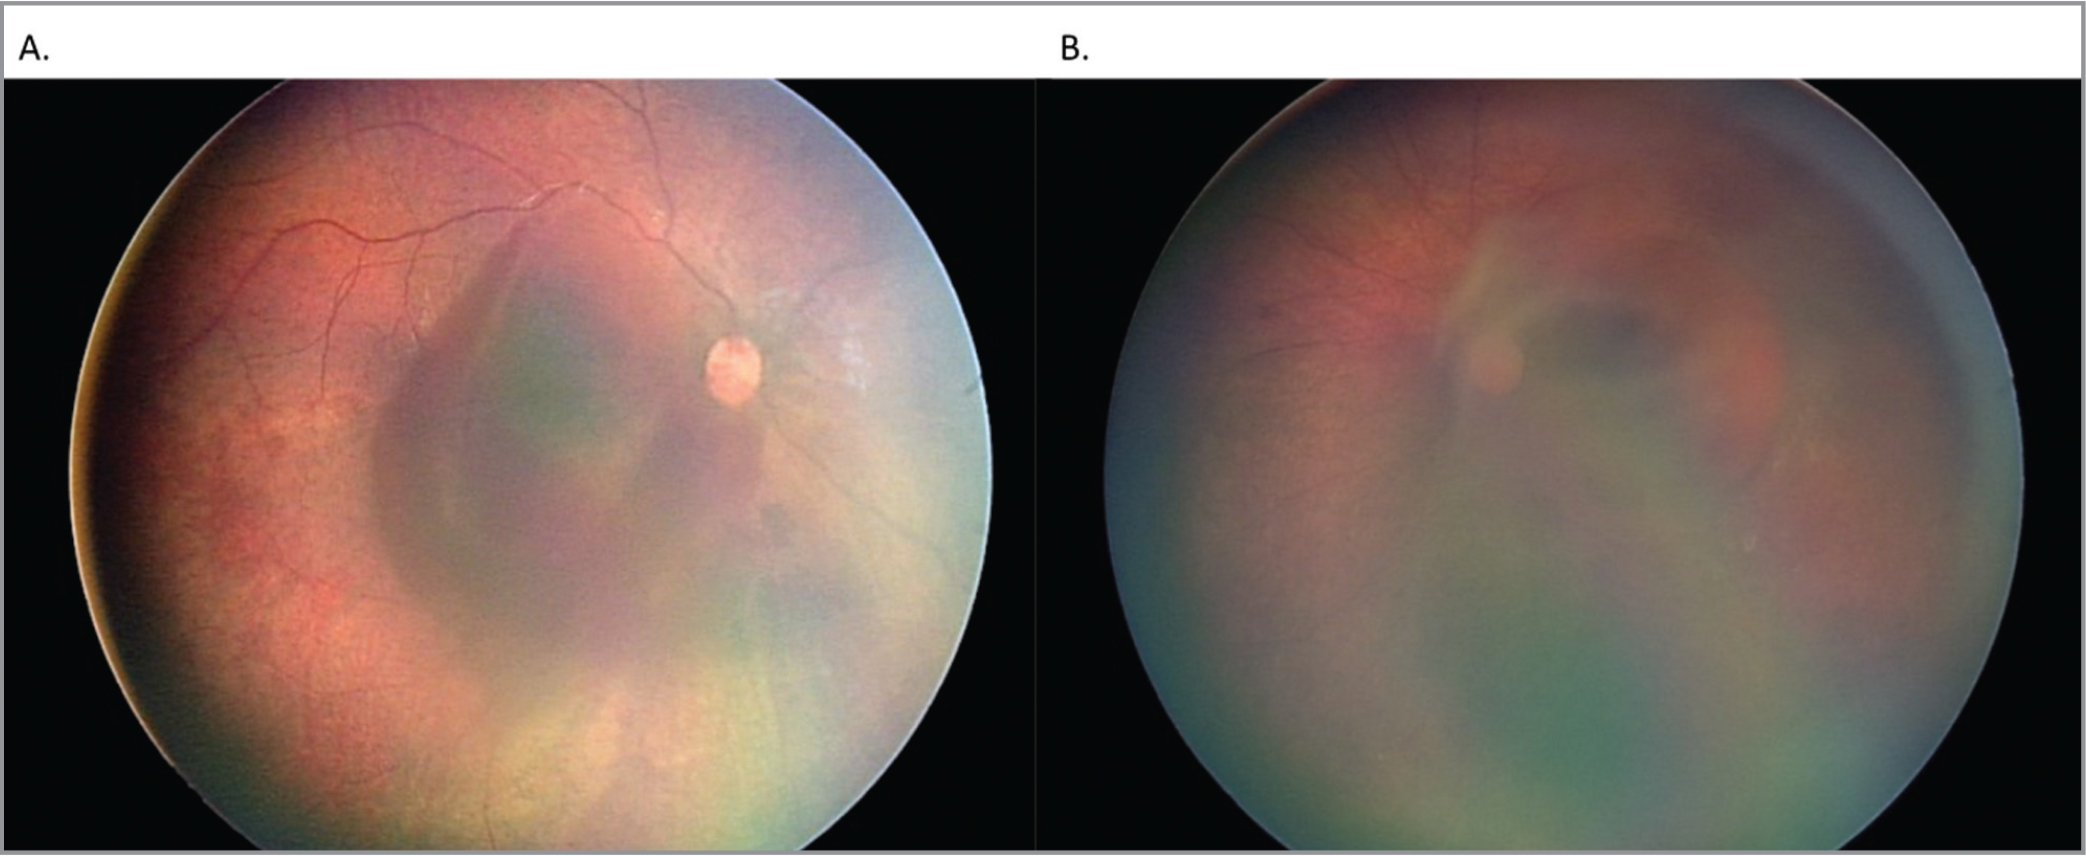 Color fundus photographs of a 6-month-old male victim of non-accidental trauma without amblyopia. (a) There is a large subhyaloid hemorrhage of the right eye, as well as scattered intraretinal hemorrhages in the periphery. This eye was observed, with clearance of the blood in 10 weeks. (b) Color fundus photograph of the left eye of the same patient with a fovea-involving sub-internal limiting hemorrhage that spans the entire macula, multiple intraretinal hemorrhages, and non-central vitreous hemorrhage of the left eye. This eye underwent vitrectomy 8 weeks after initial presentation.